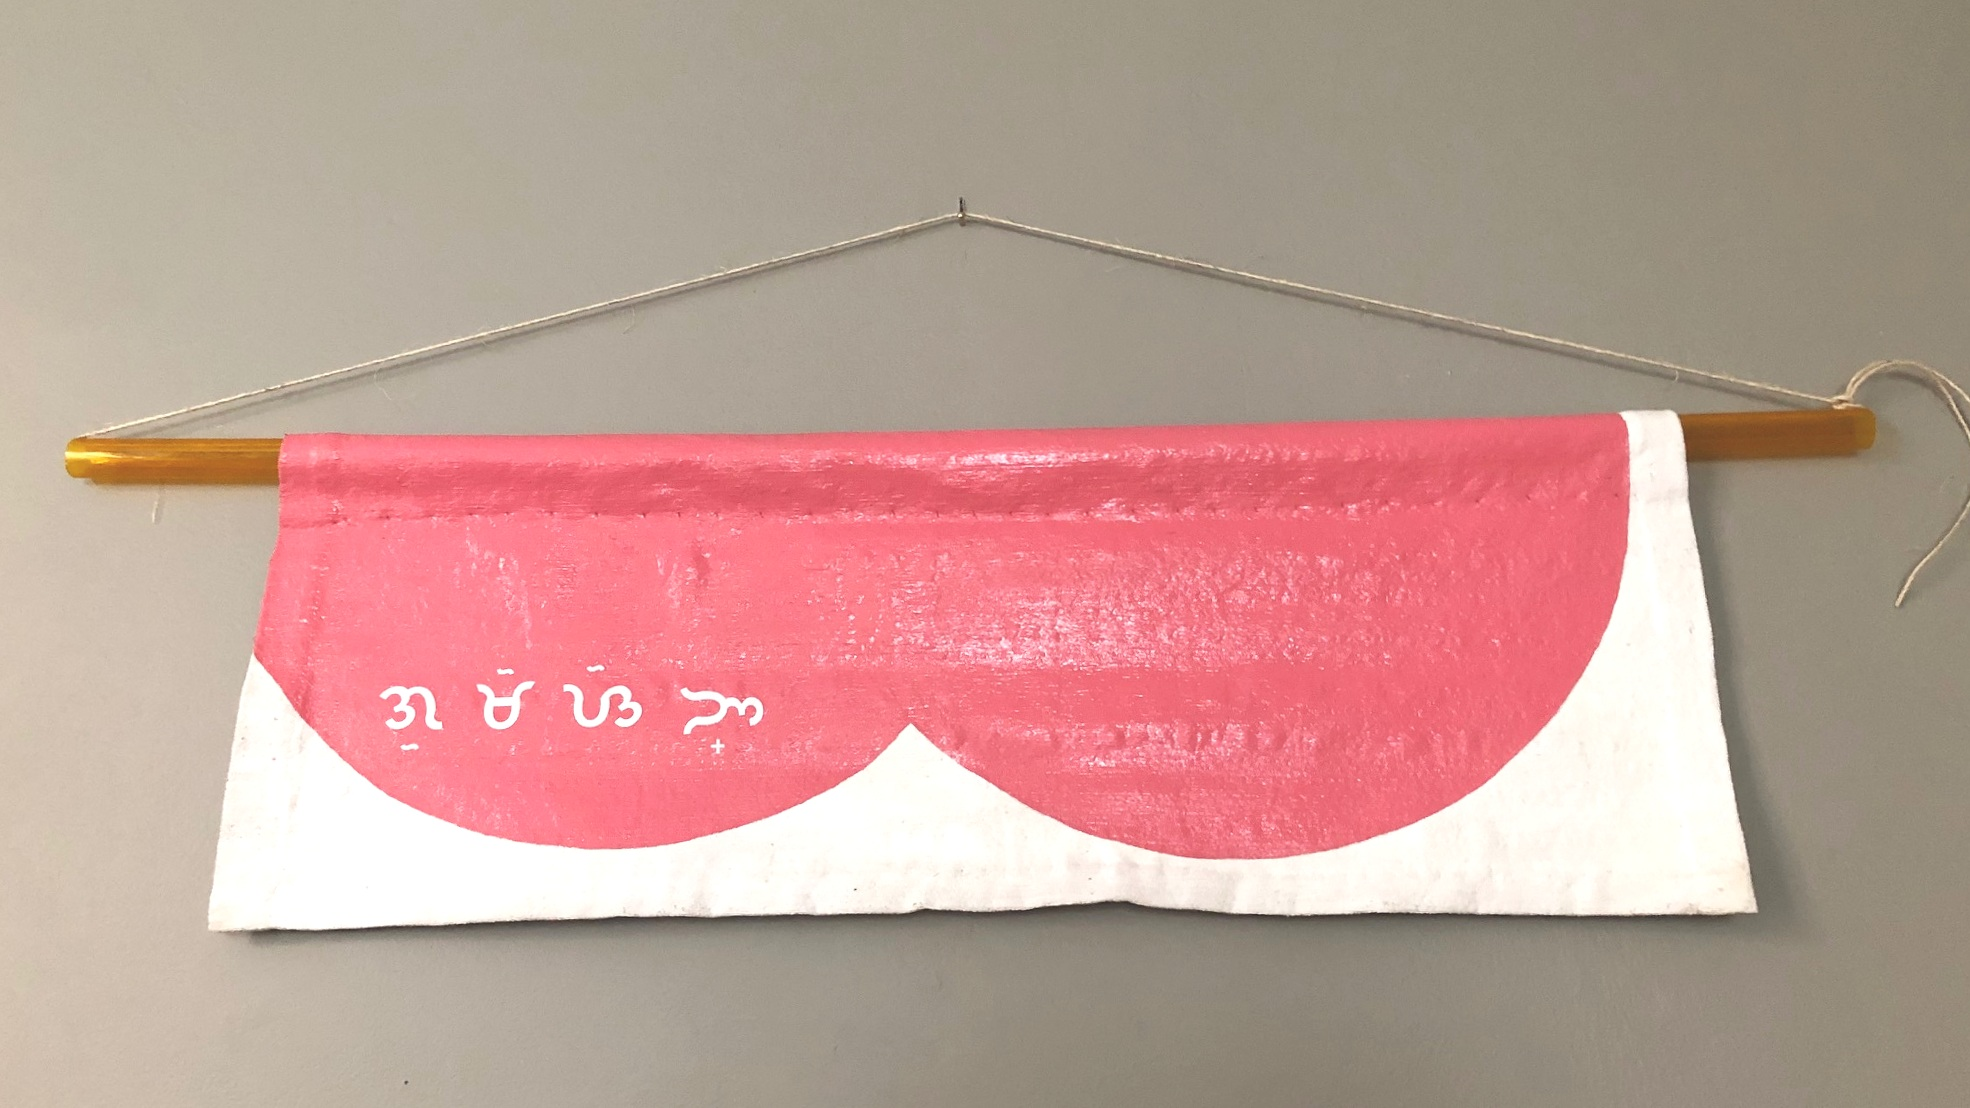 07_Gumising:awake_2018_acrylic paint, vinyl decals, cotton, and plastic_83.82 x 22.86 cm.jpg